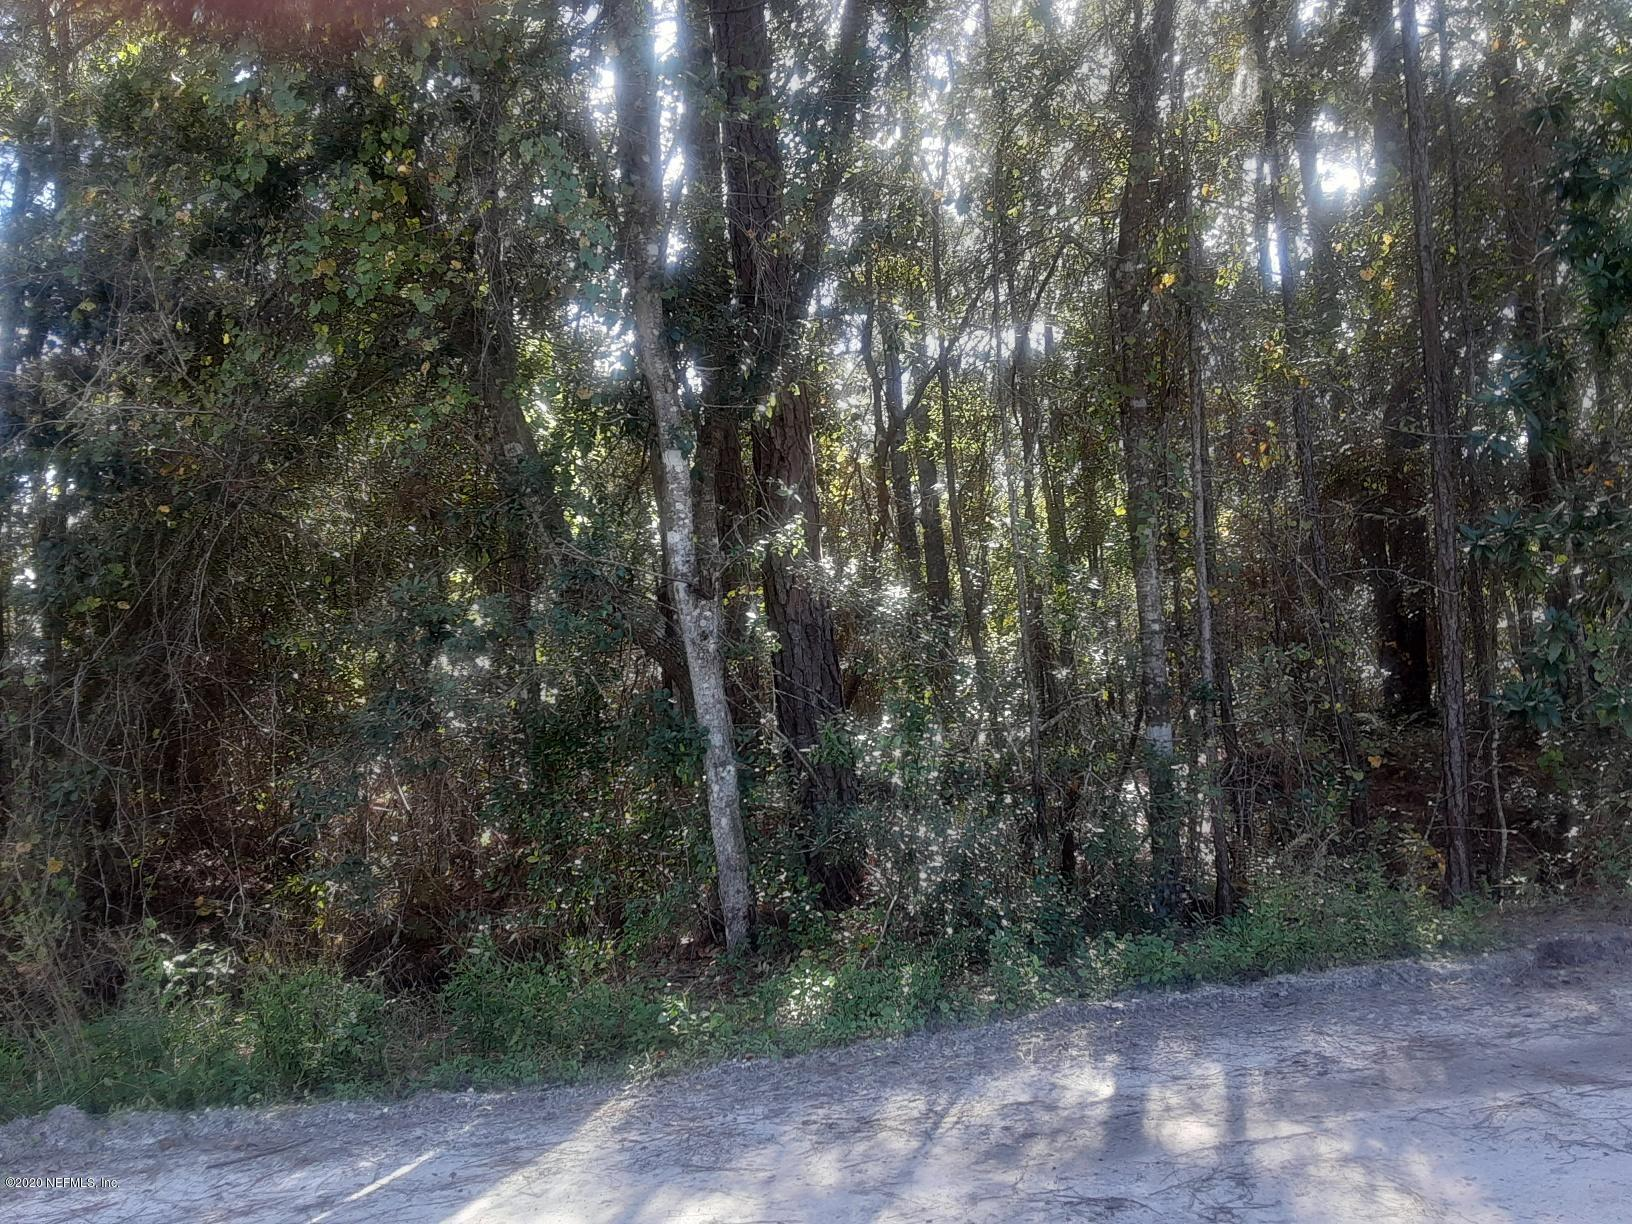 0 PINNER, PALATKA, FLORIDA 32177, ,Vacant land,For sale,PINNER,1083456